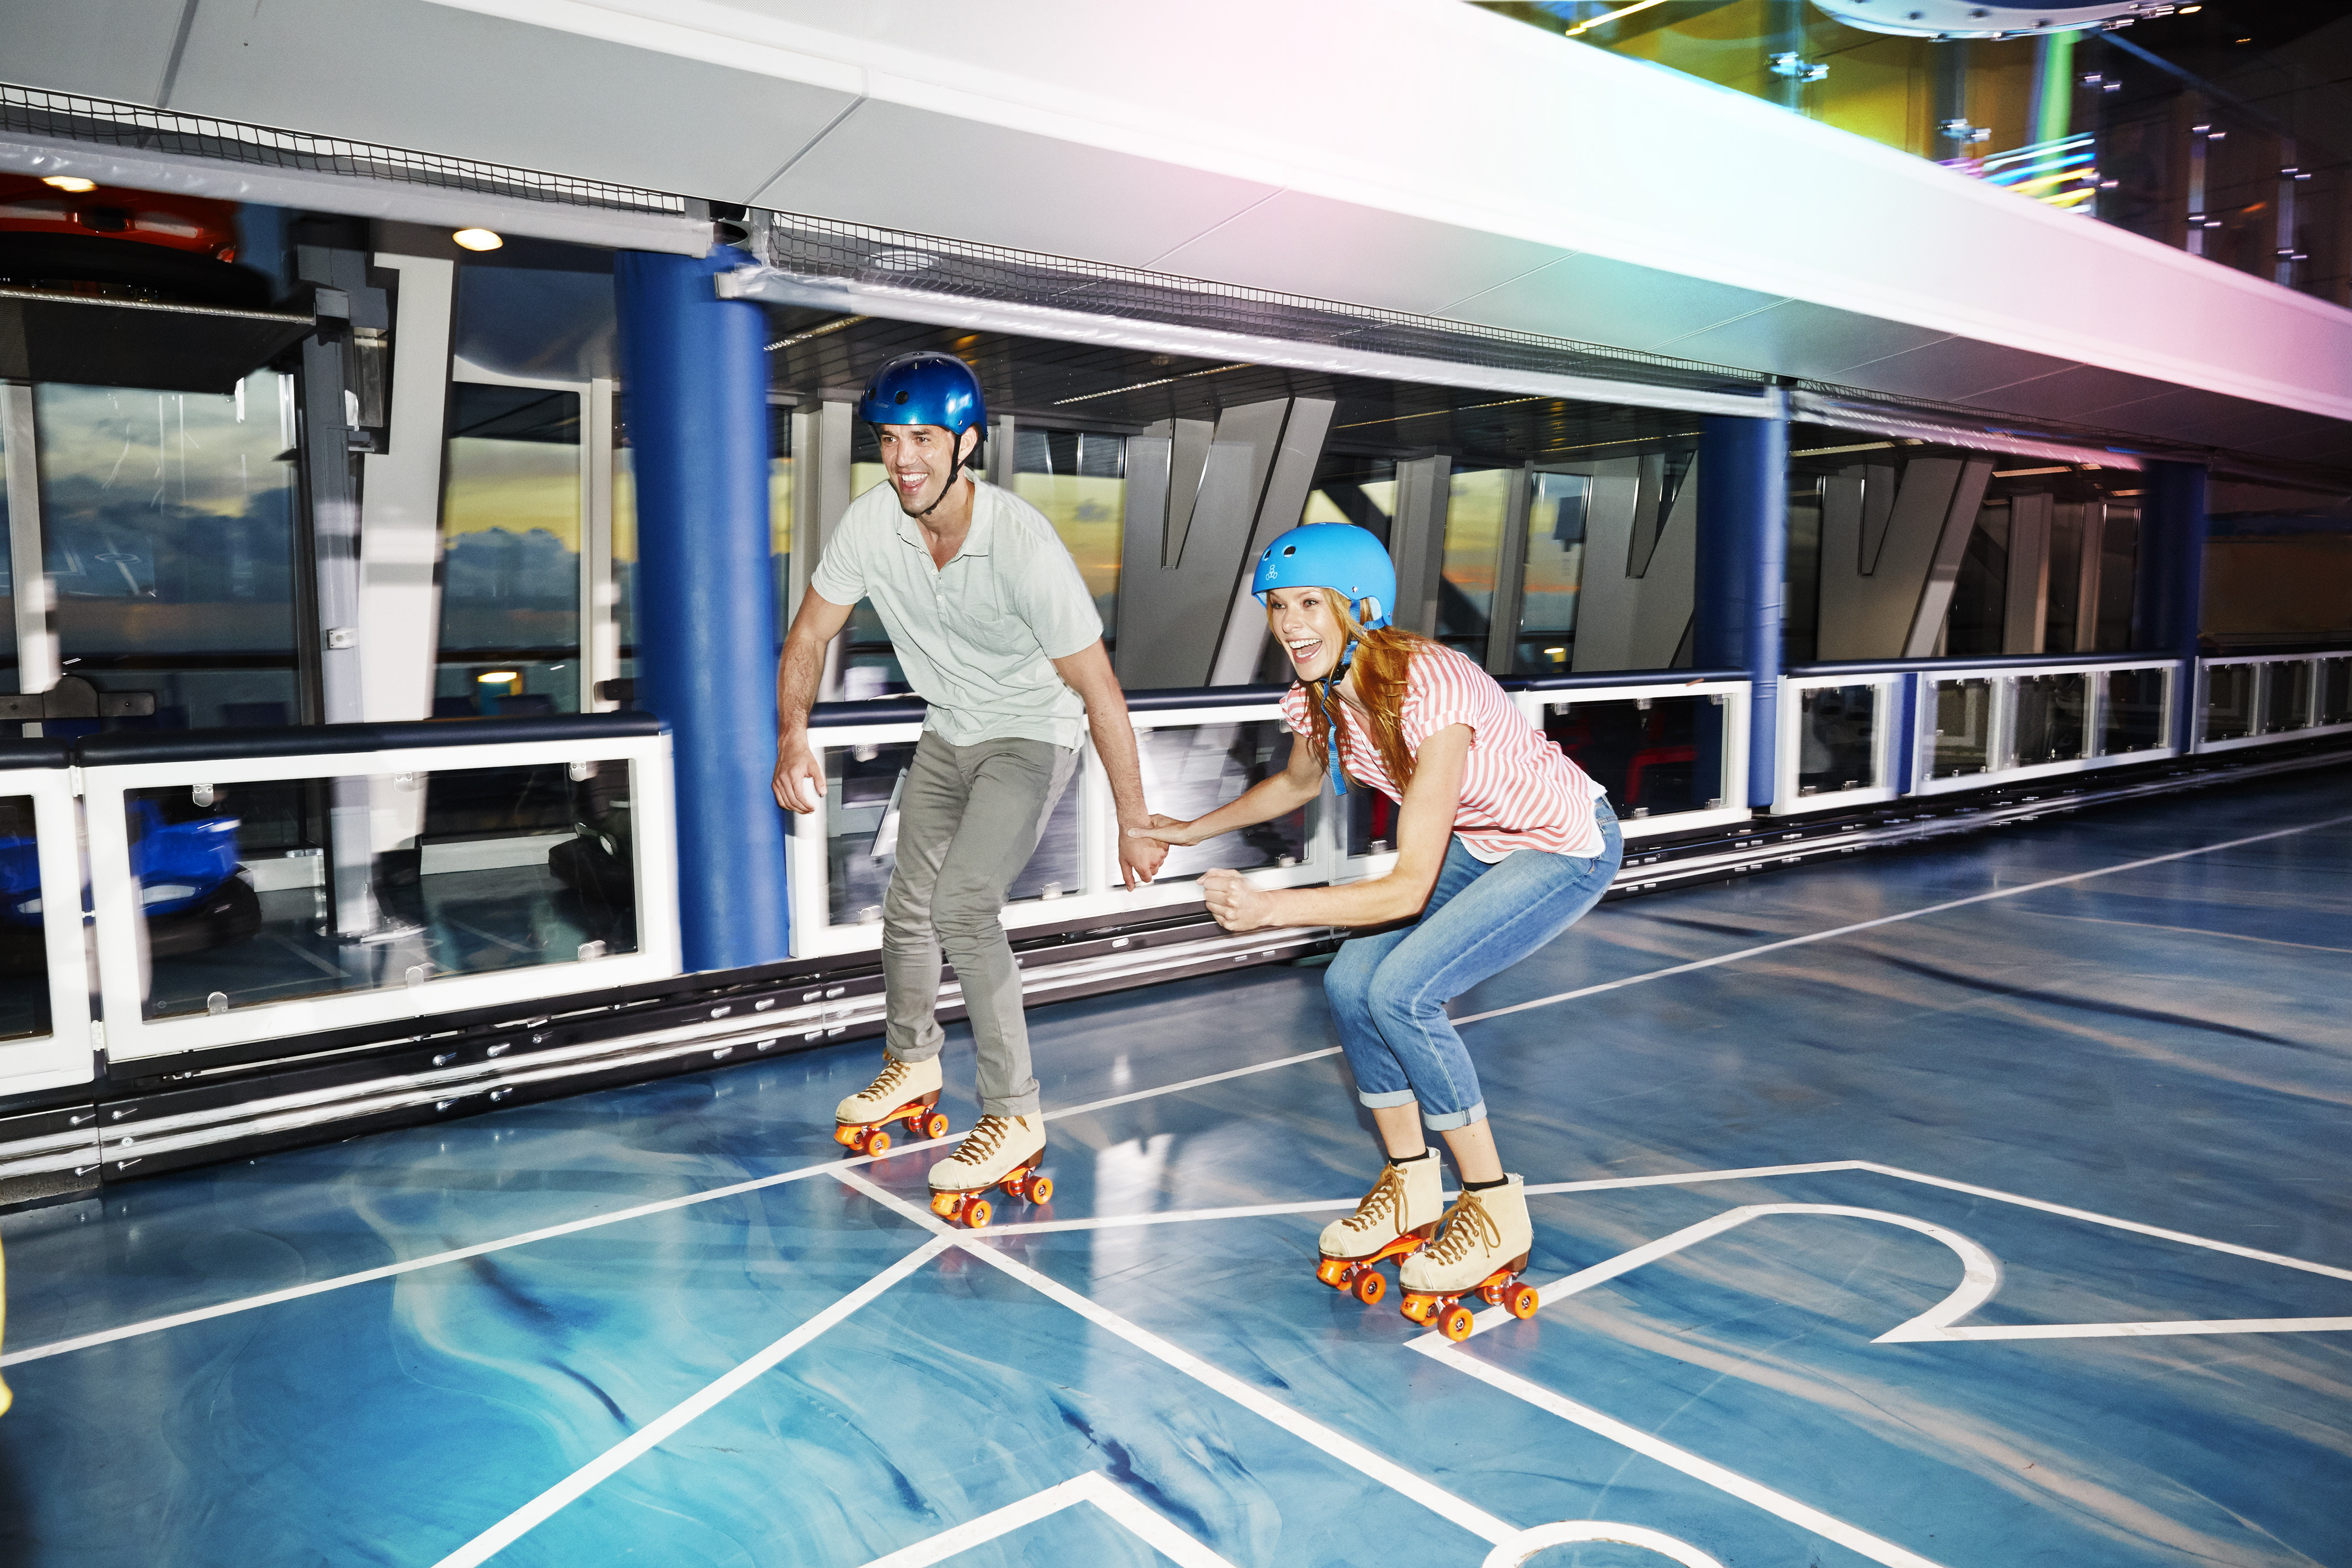 Royal Caribbean Anthem of the Seas Interior Seaplex Rollerskating 2.jpg